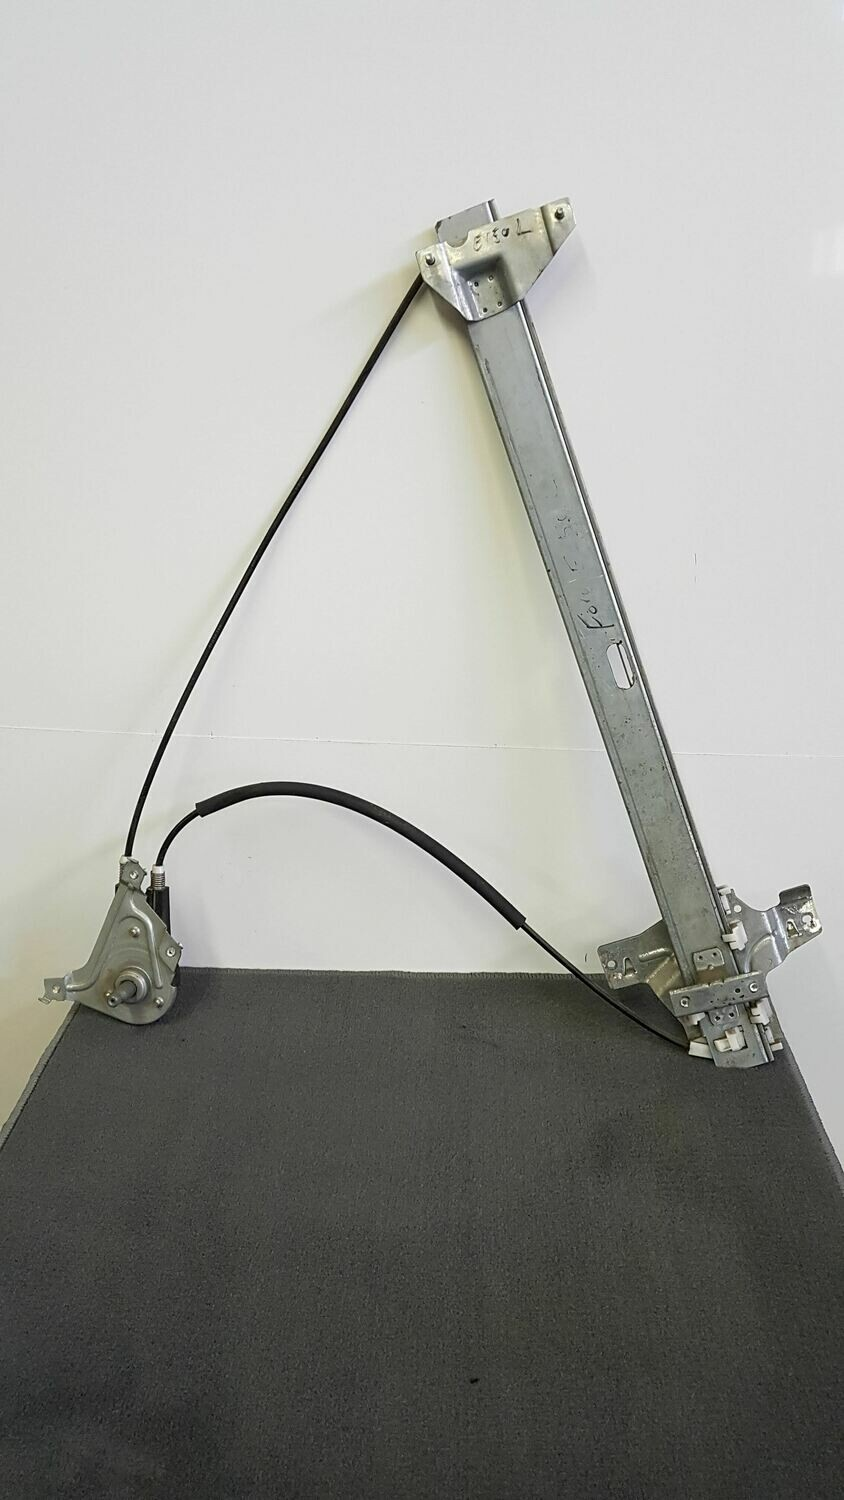 Ford Van Window Regulator